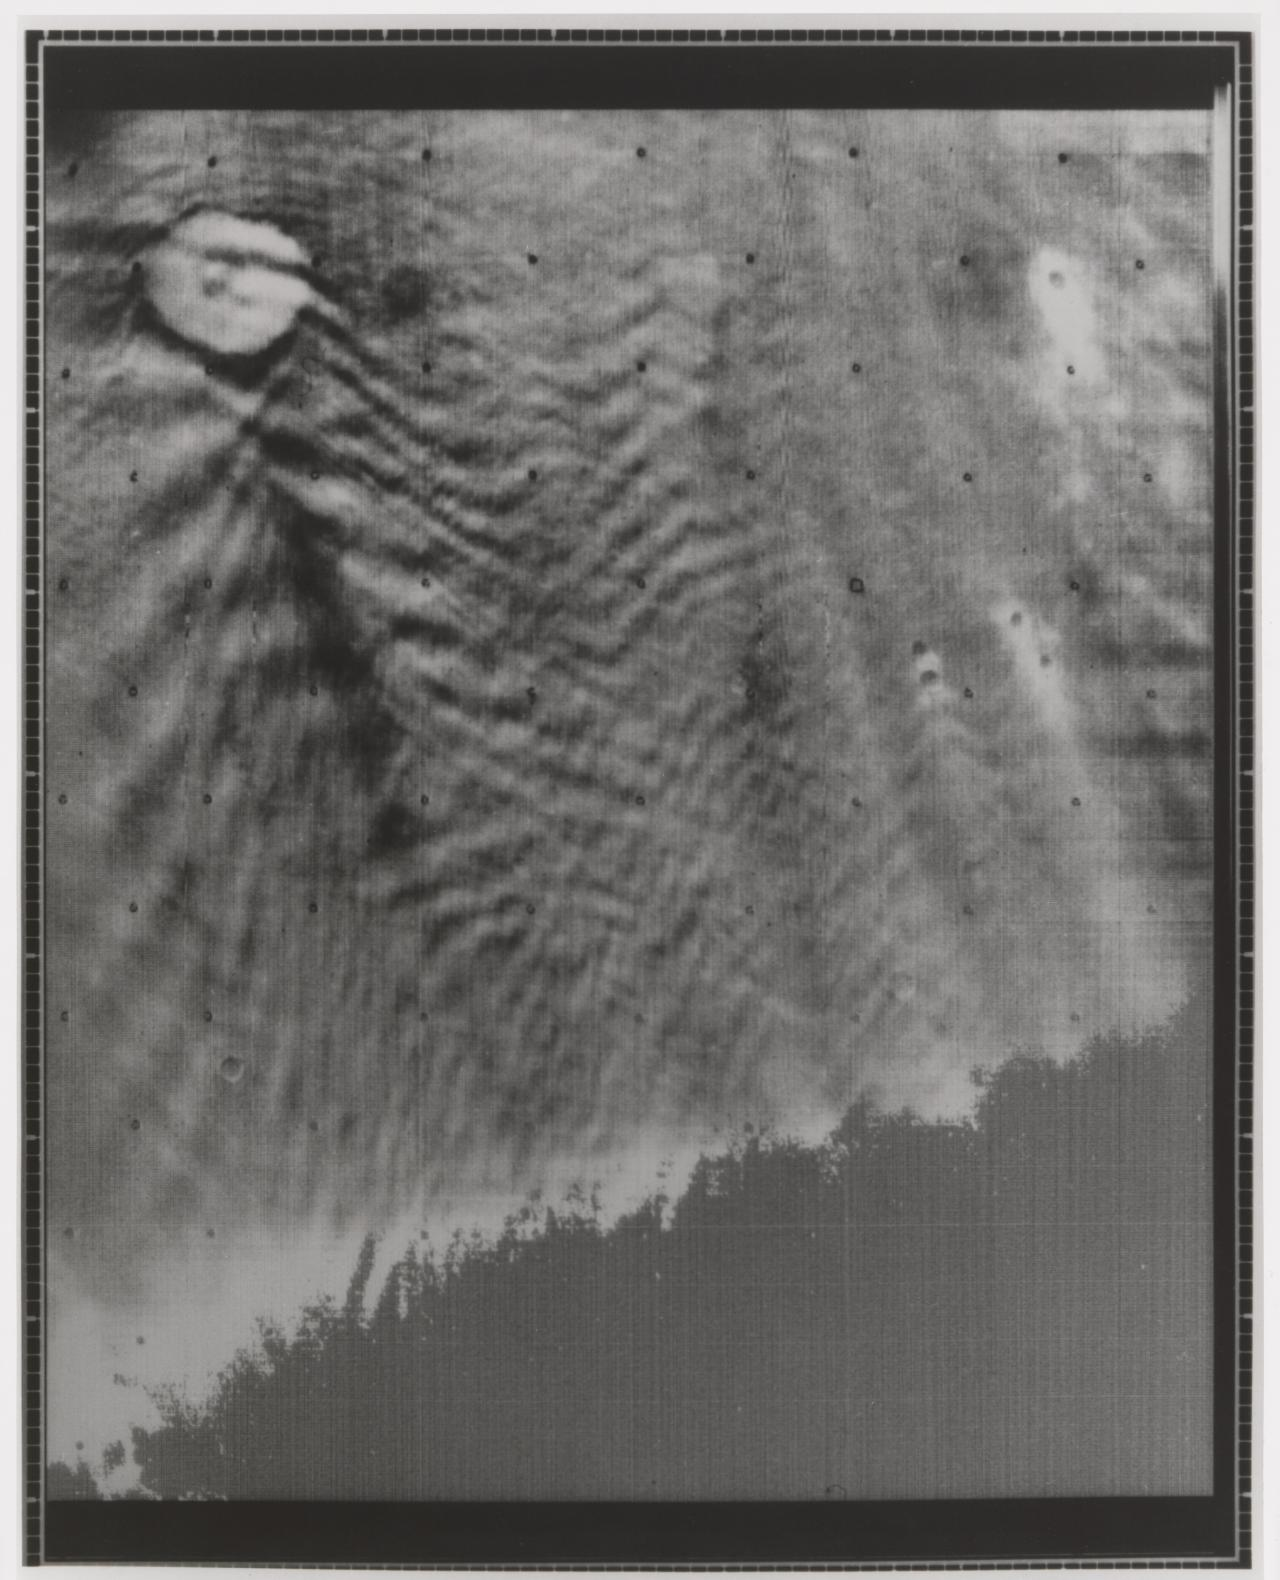 Mars. Marina 9, 14 February 1972, atmospheric disruption by prominent surface features